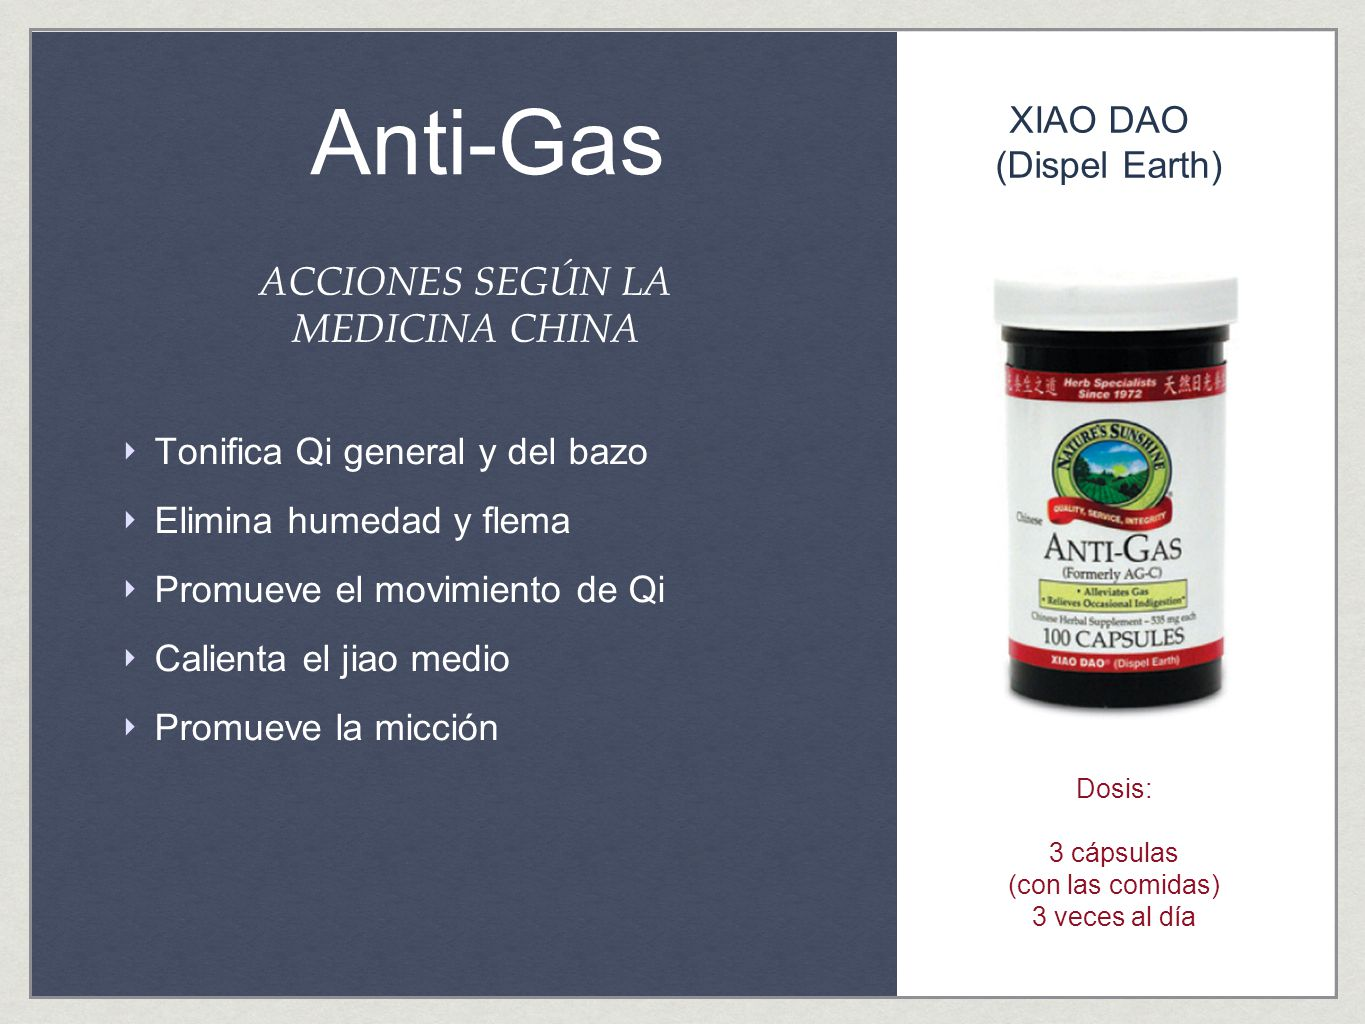 Anti-Gas ACCIONES SEGÚN LA MEDICINA CHINA XIAO DAO (Dispel Earth)